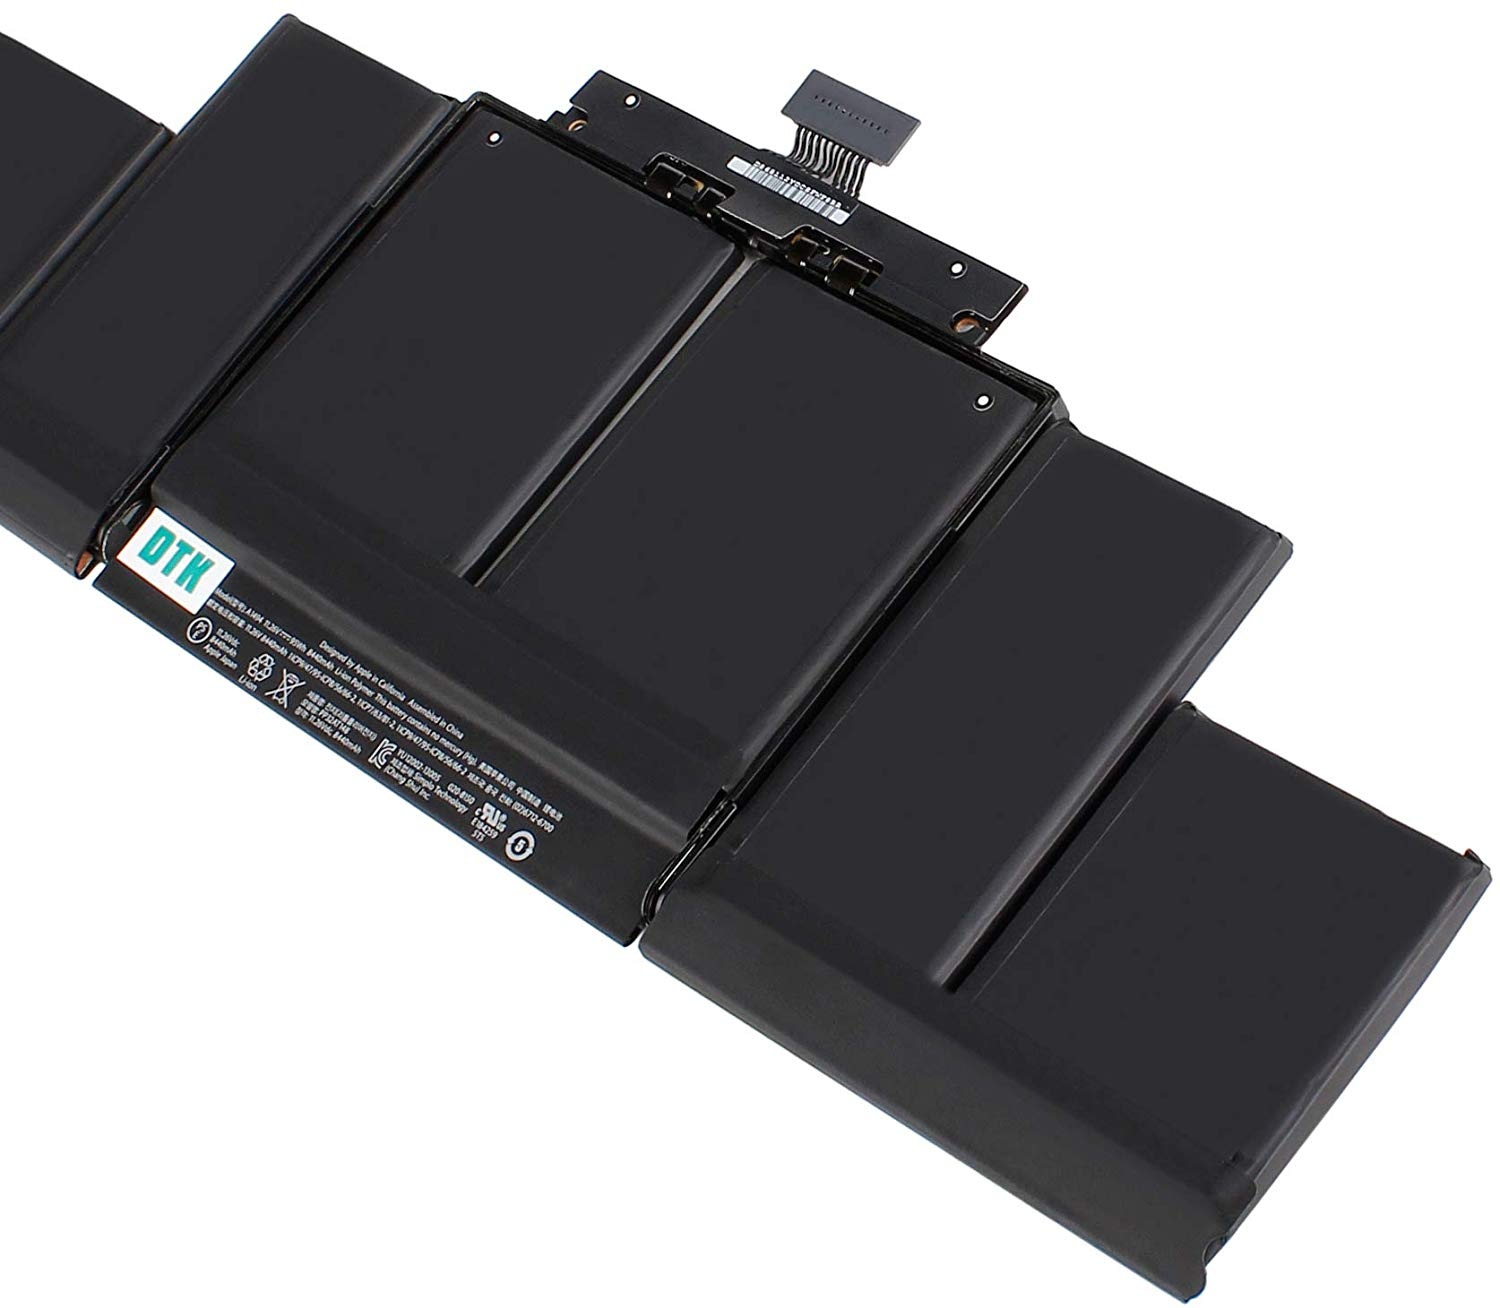 DTK A1494 Laptop Battery for Macbook Pro 15 inch A1398 (Only fit Late 2013 & Mid 2014) ME293 ME294